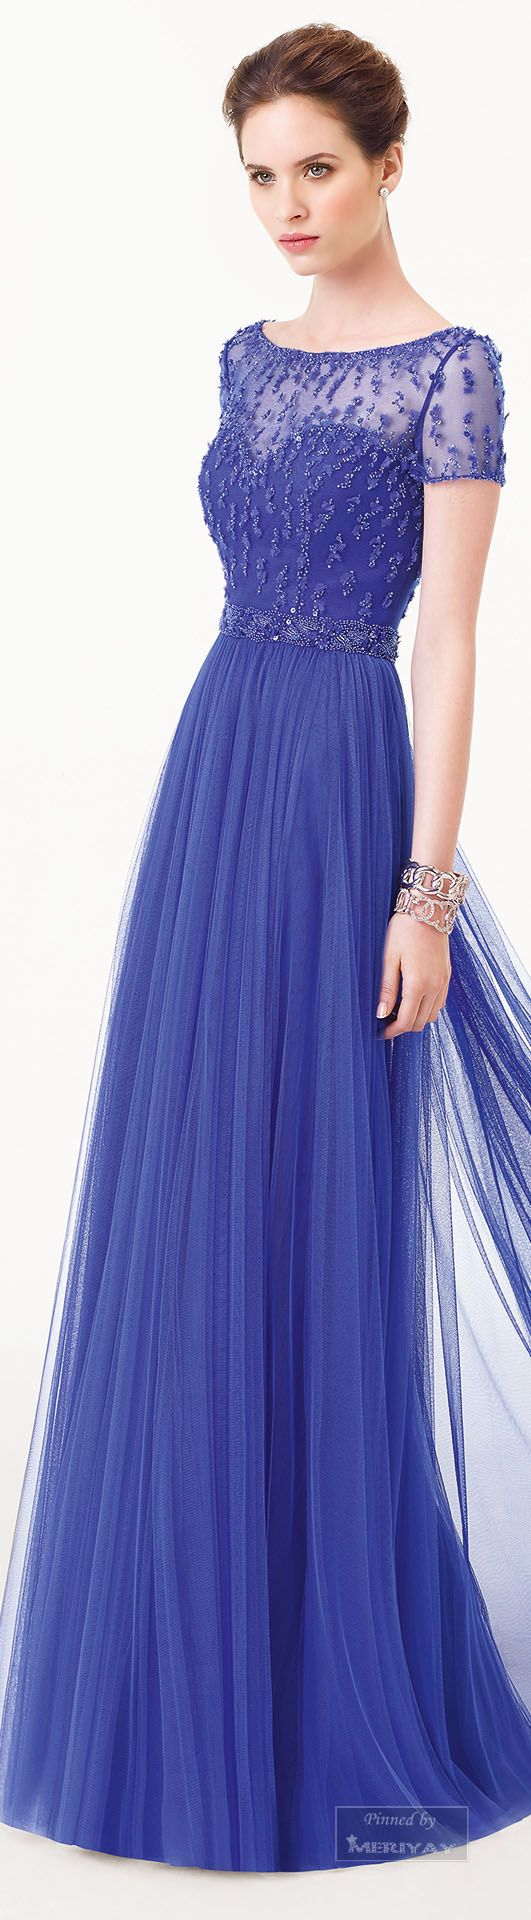 1869 best blue images on Pinterest | Blue fashion, Fashion 2017 and ...